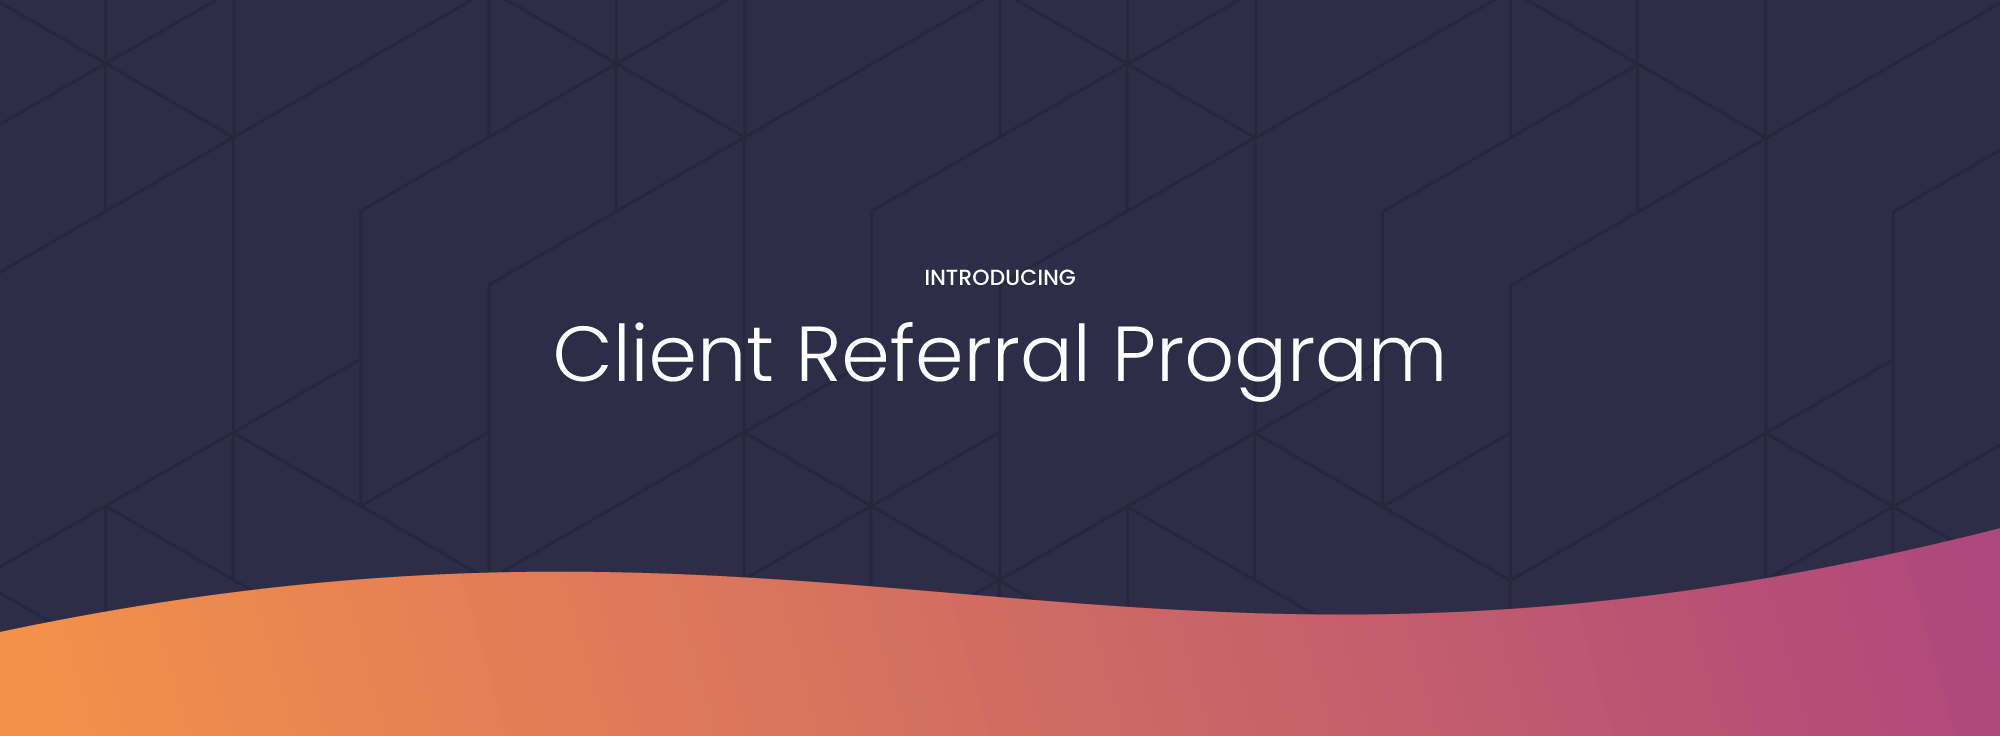 client referral program featured image